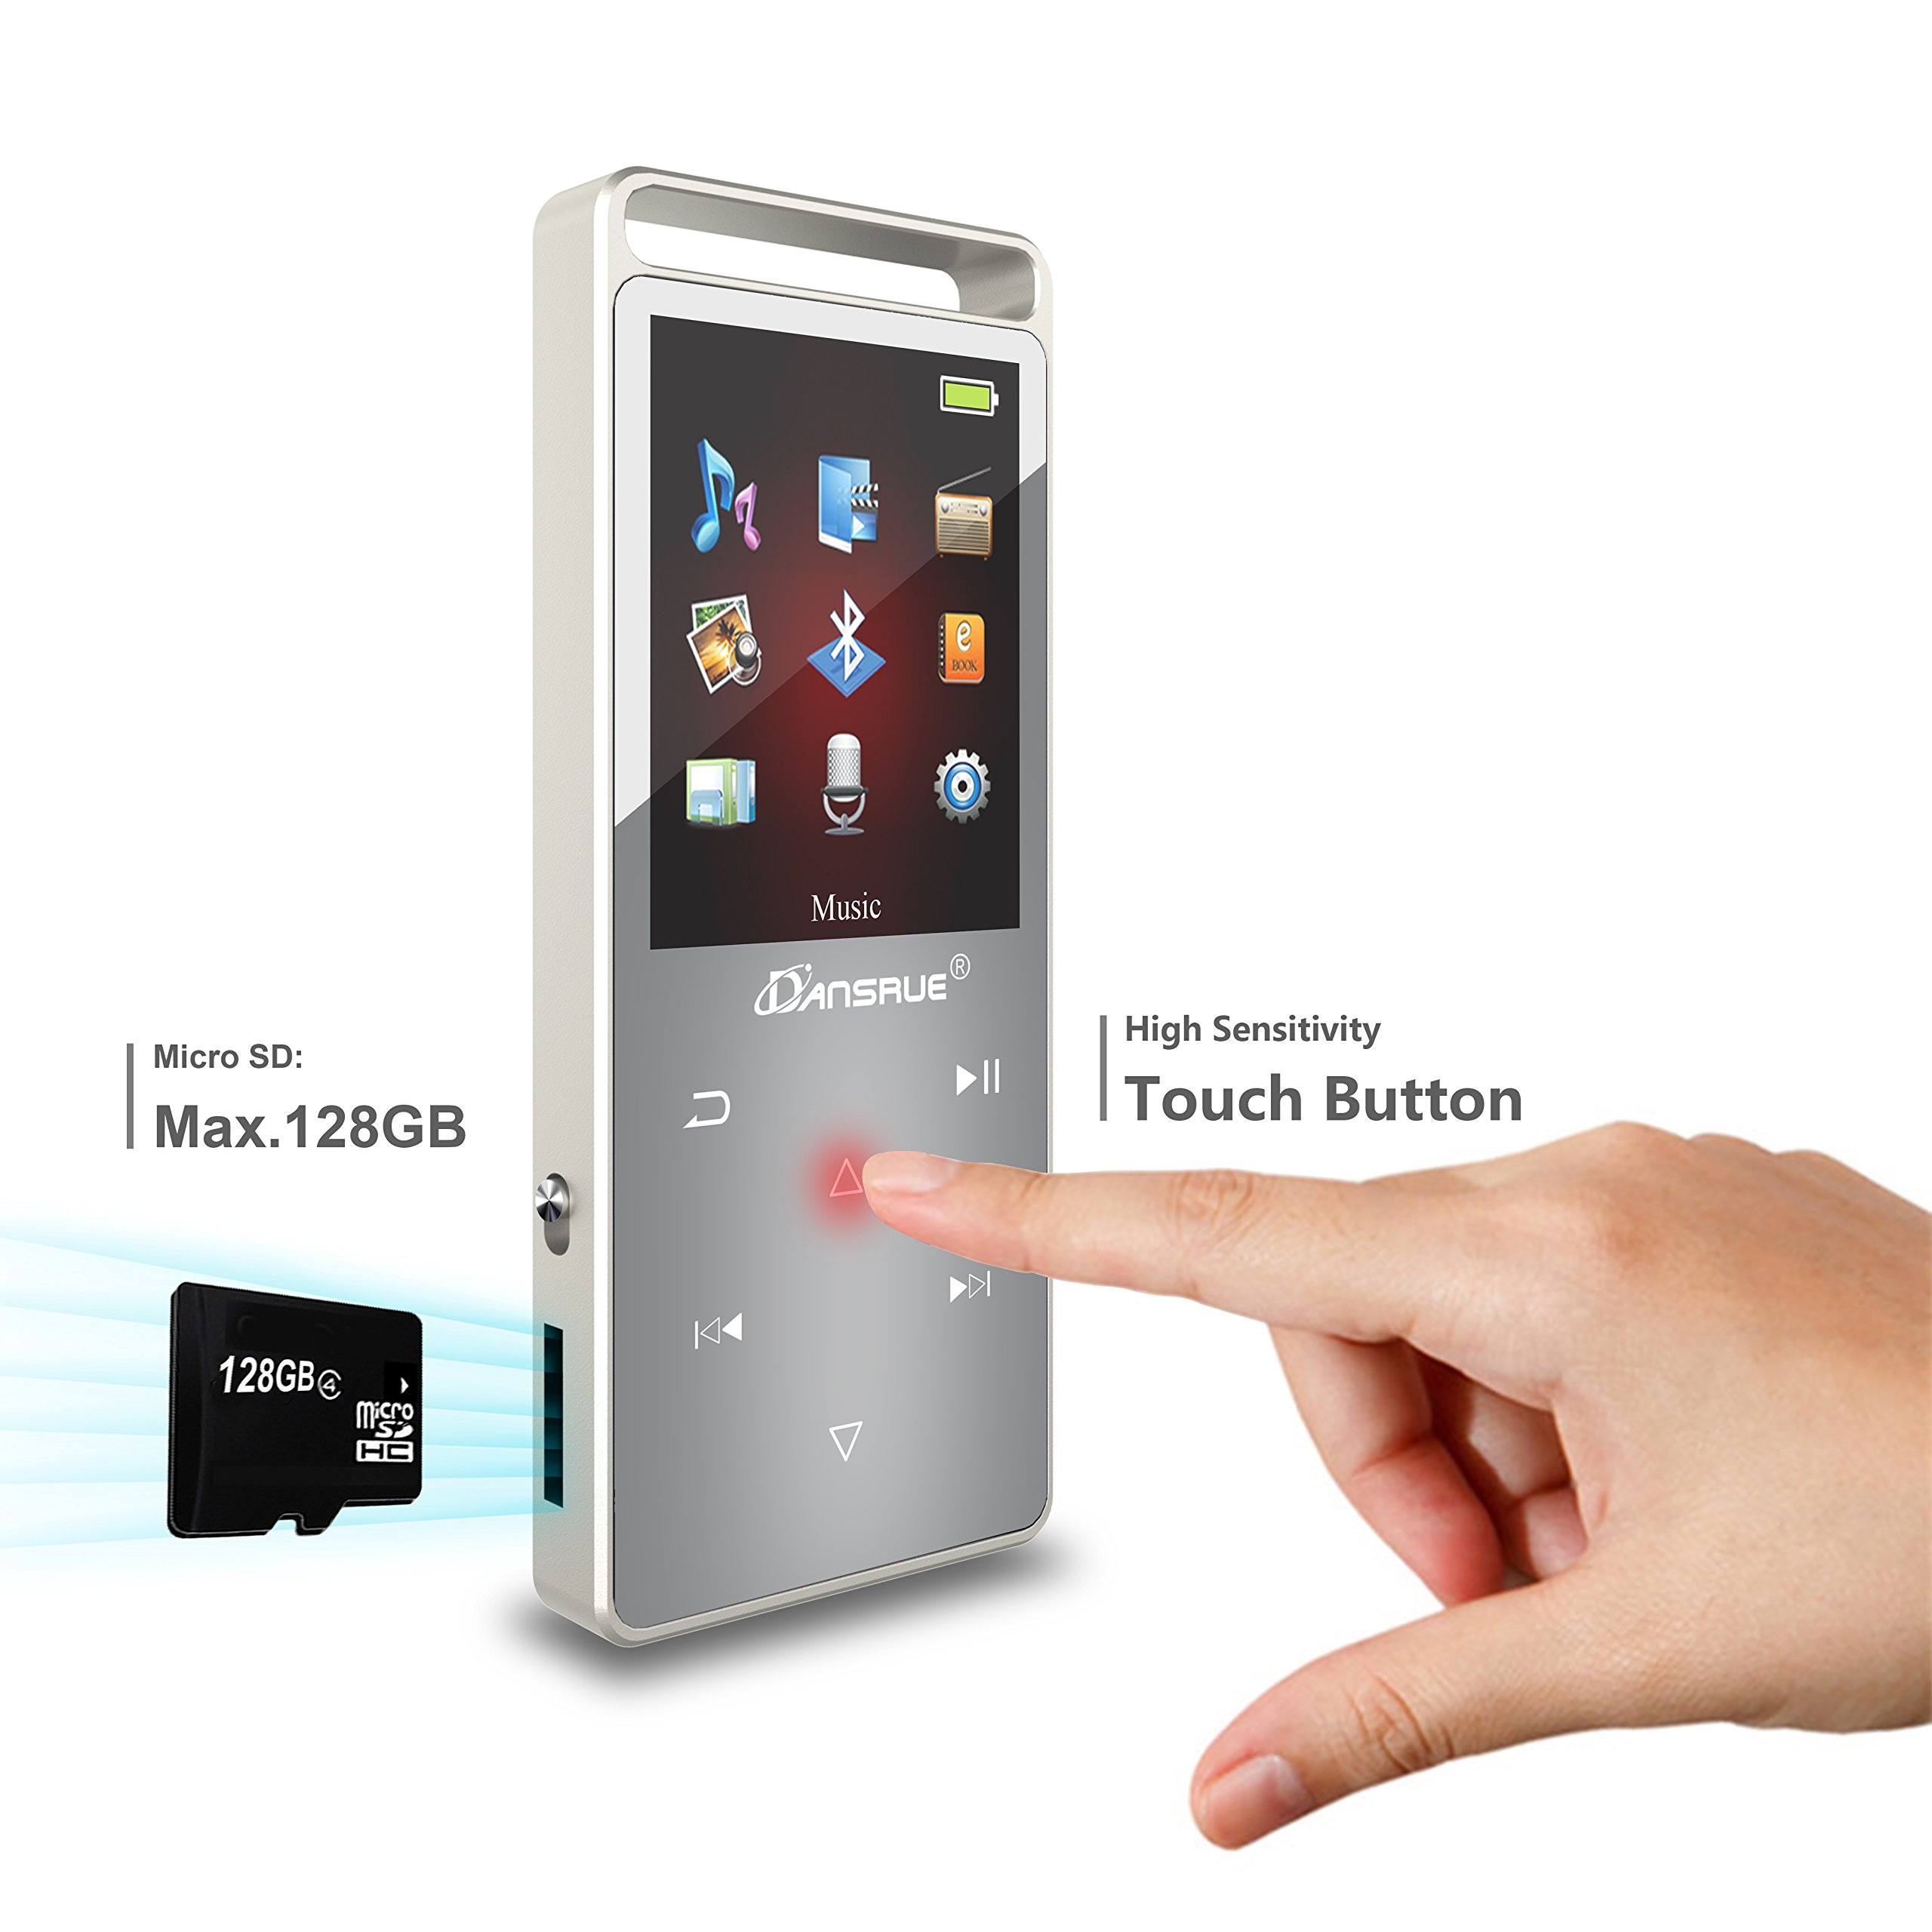 Dansrue Bluetooth MP3 Music Player with FM Radio/ Voice Recorder, Lossless Sound, Metal Touch button , 1.8 Inch Color Screen, 60 Hours Playback by Dansrueus (Image #3)